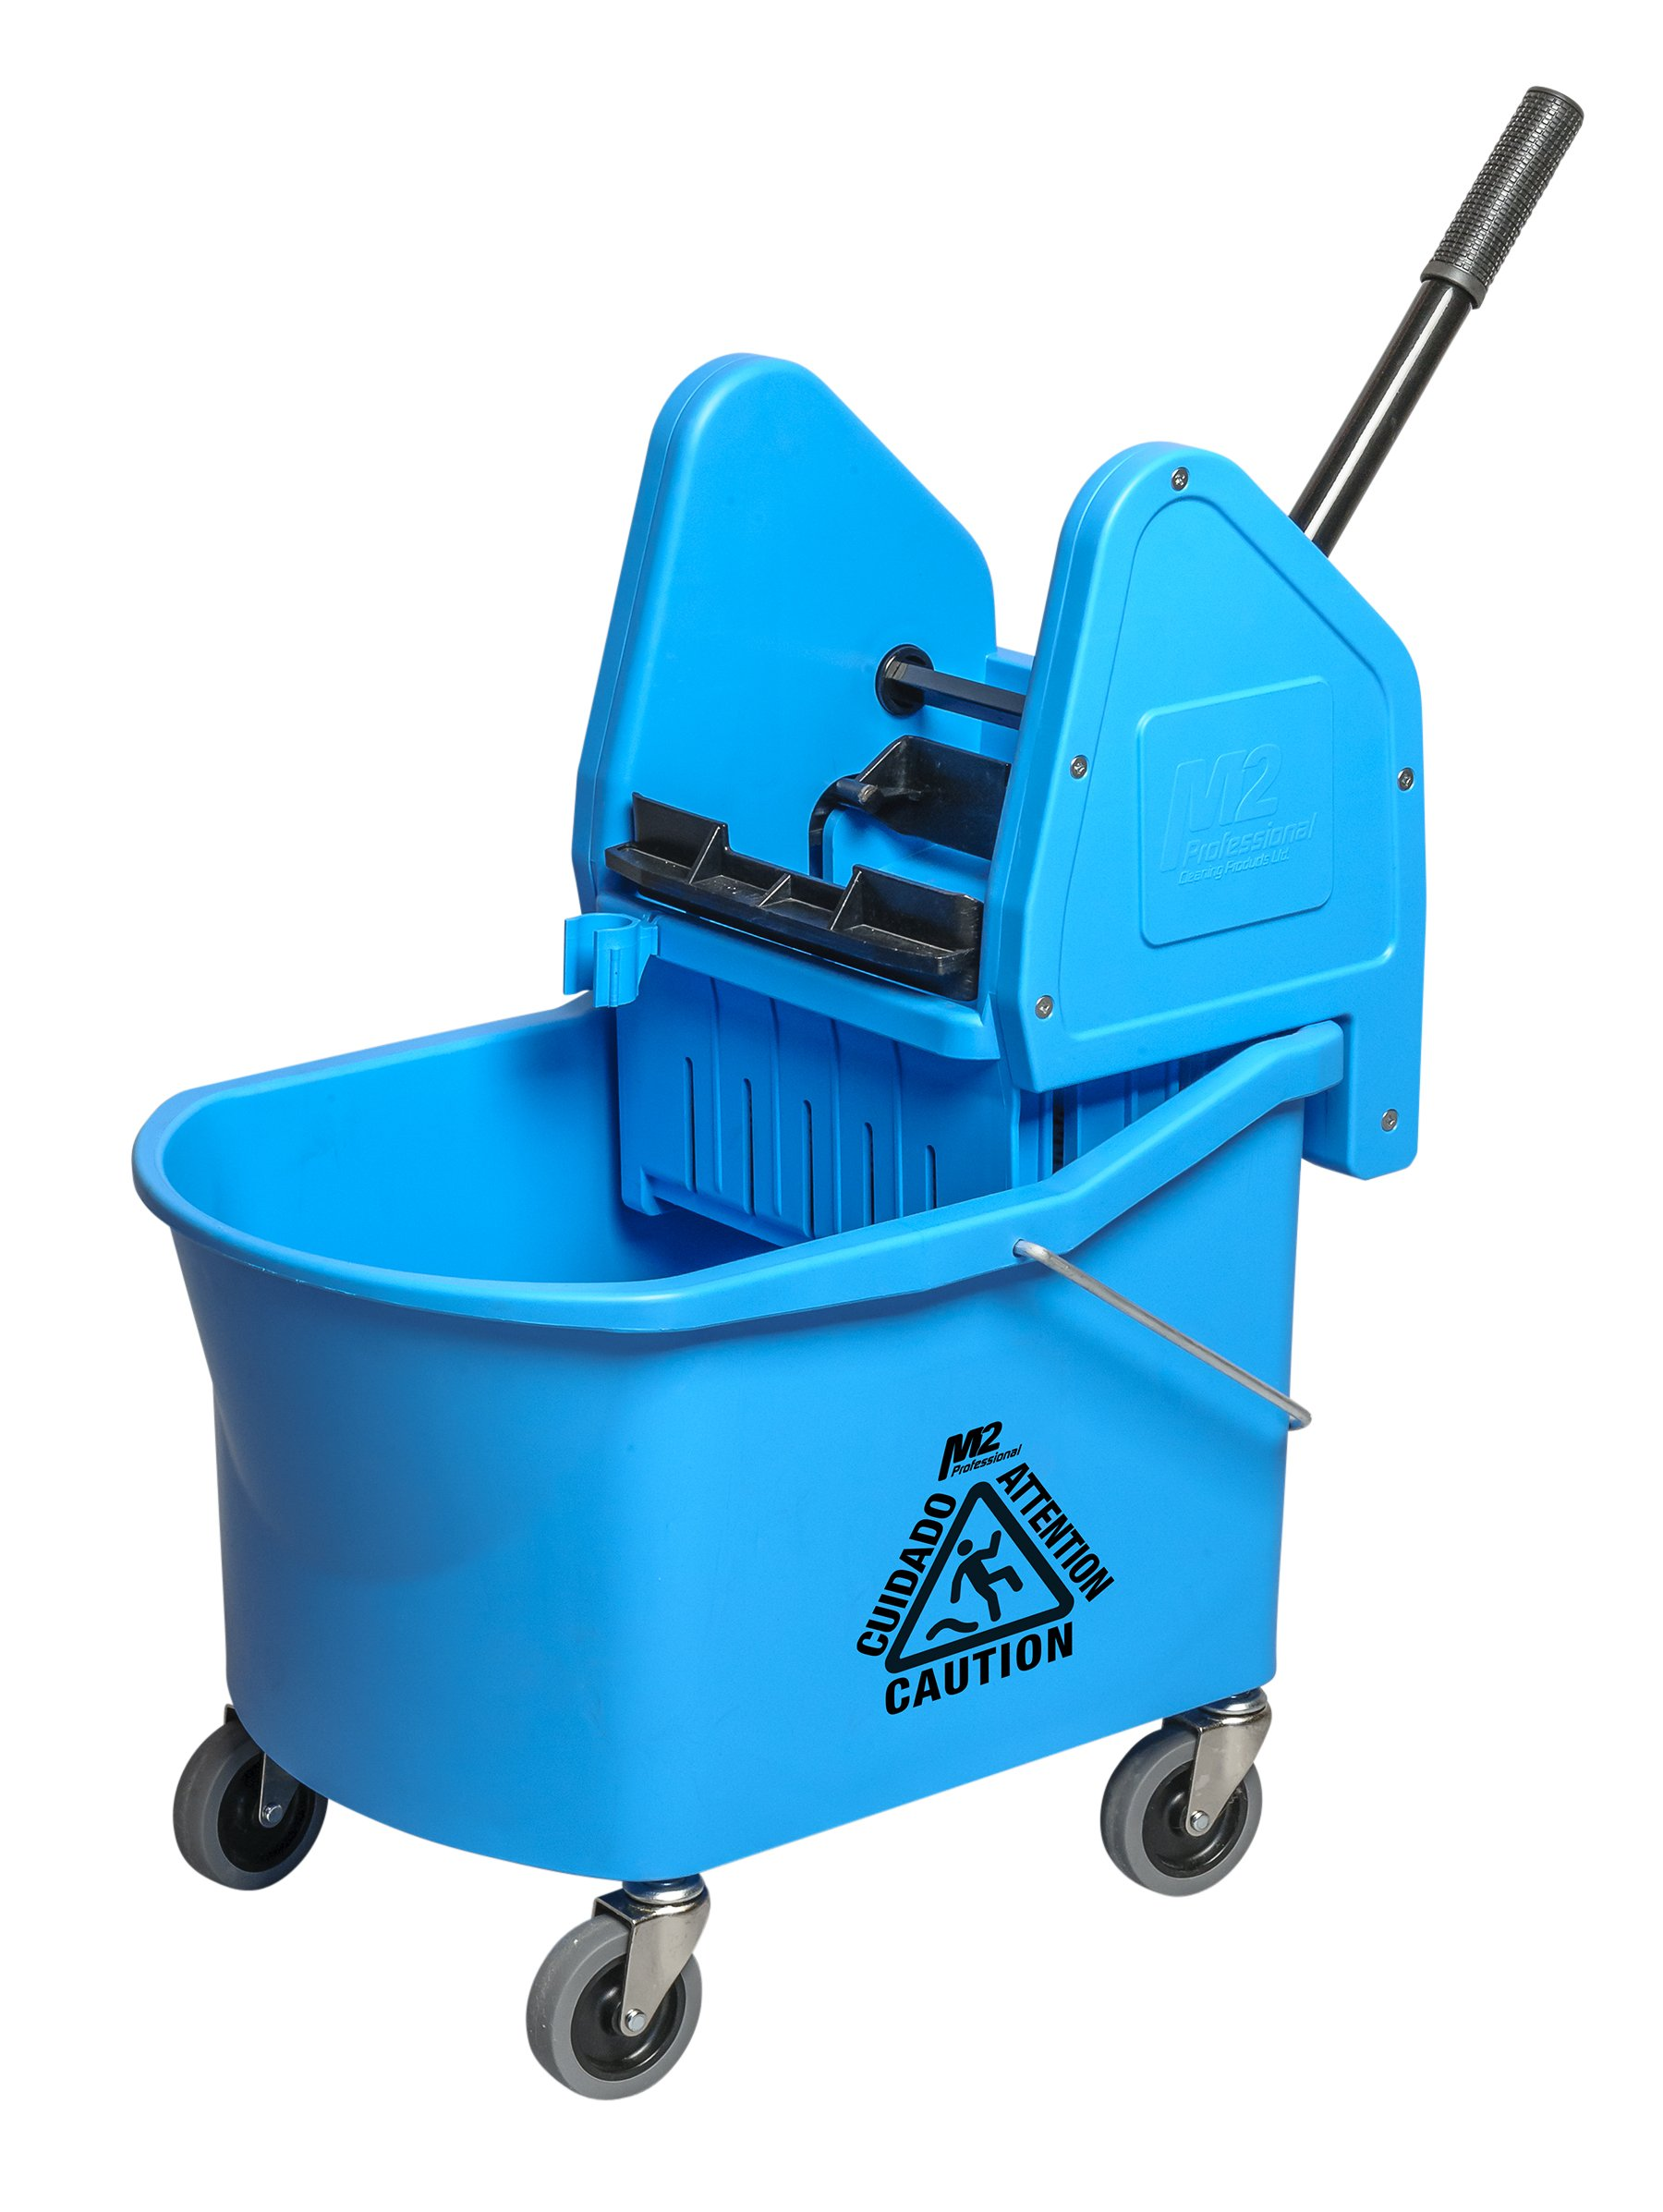 M2 Professional 32Qt/30L Grizzly Mop Bucket with Down-Press Wringer - Blue